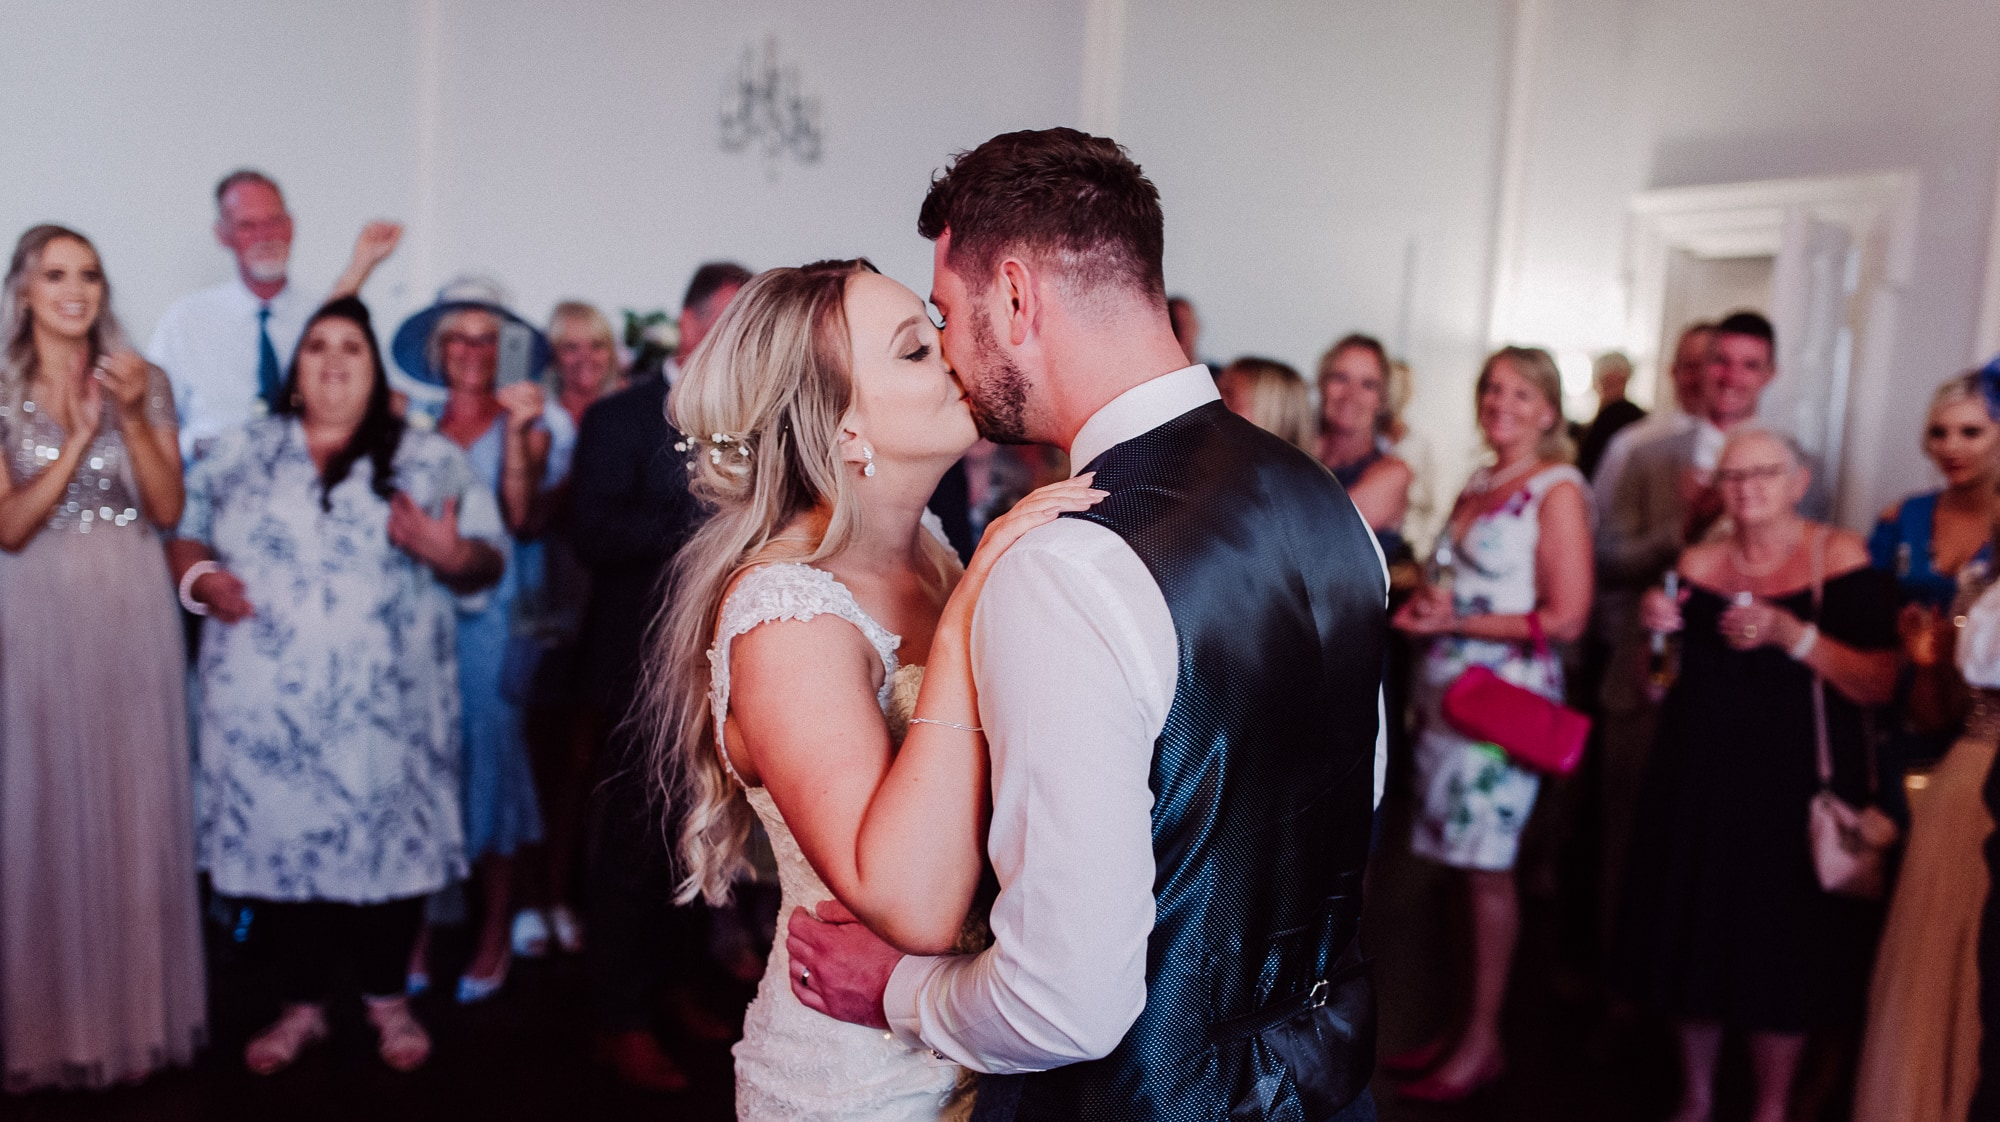 First Dance Somerford Hall Tianna J-Williams Photography